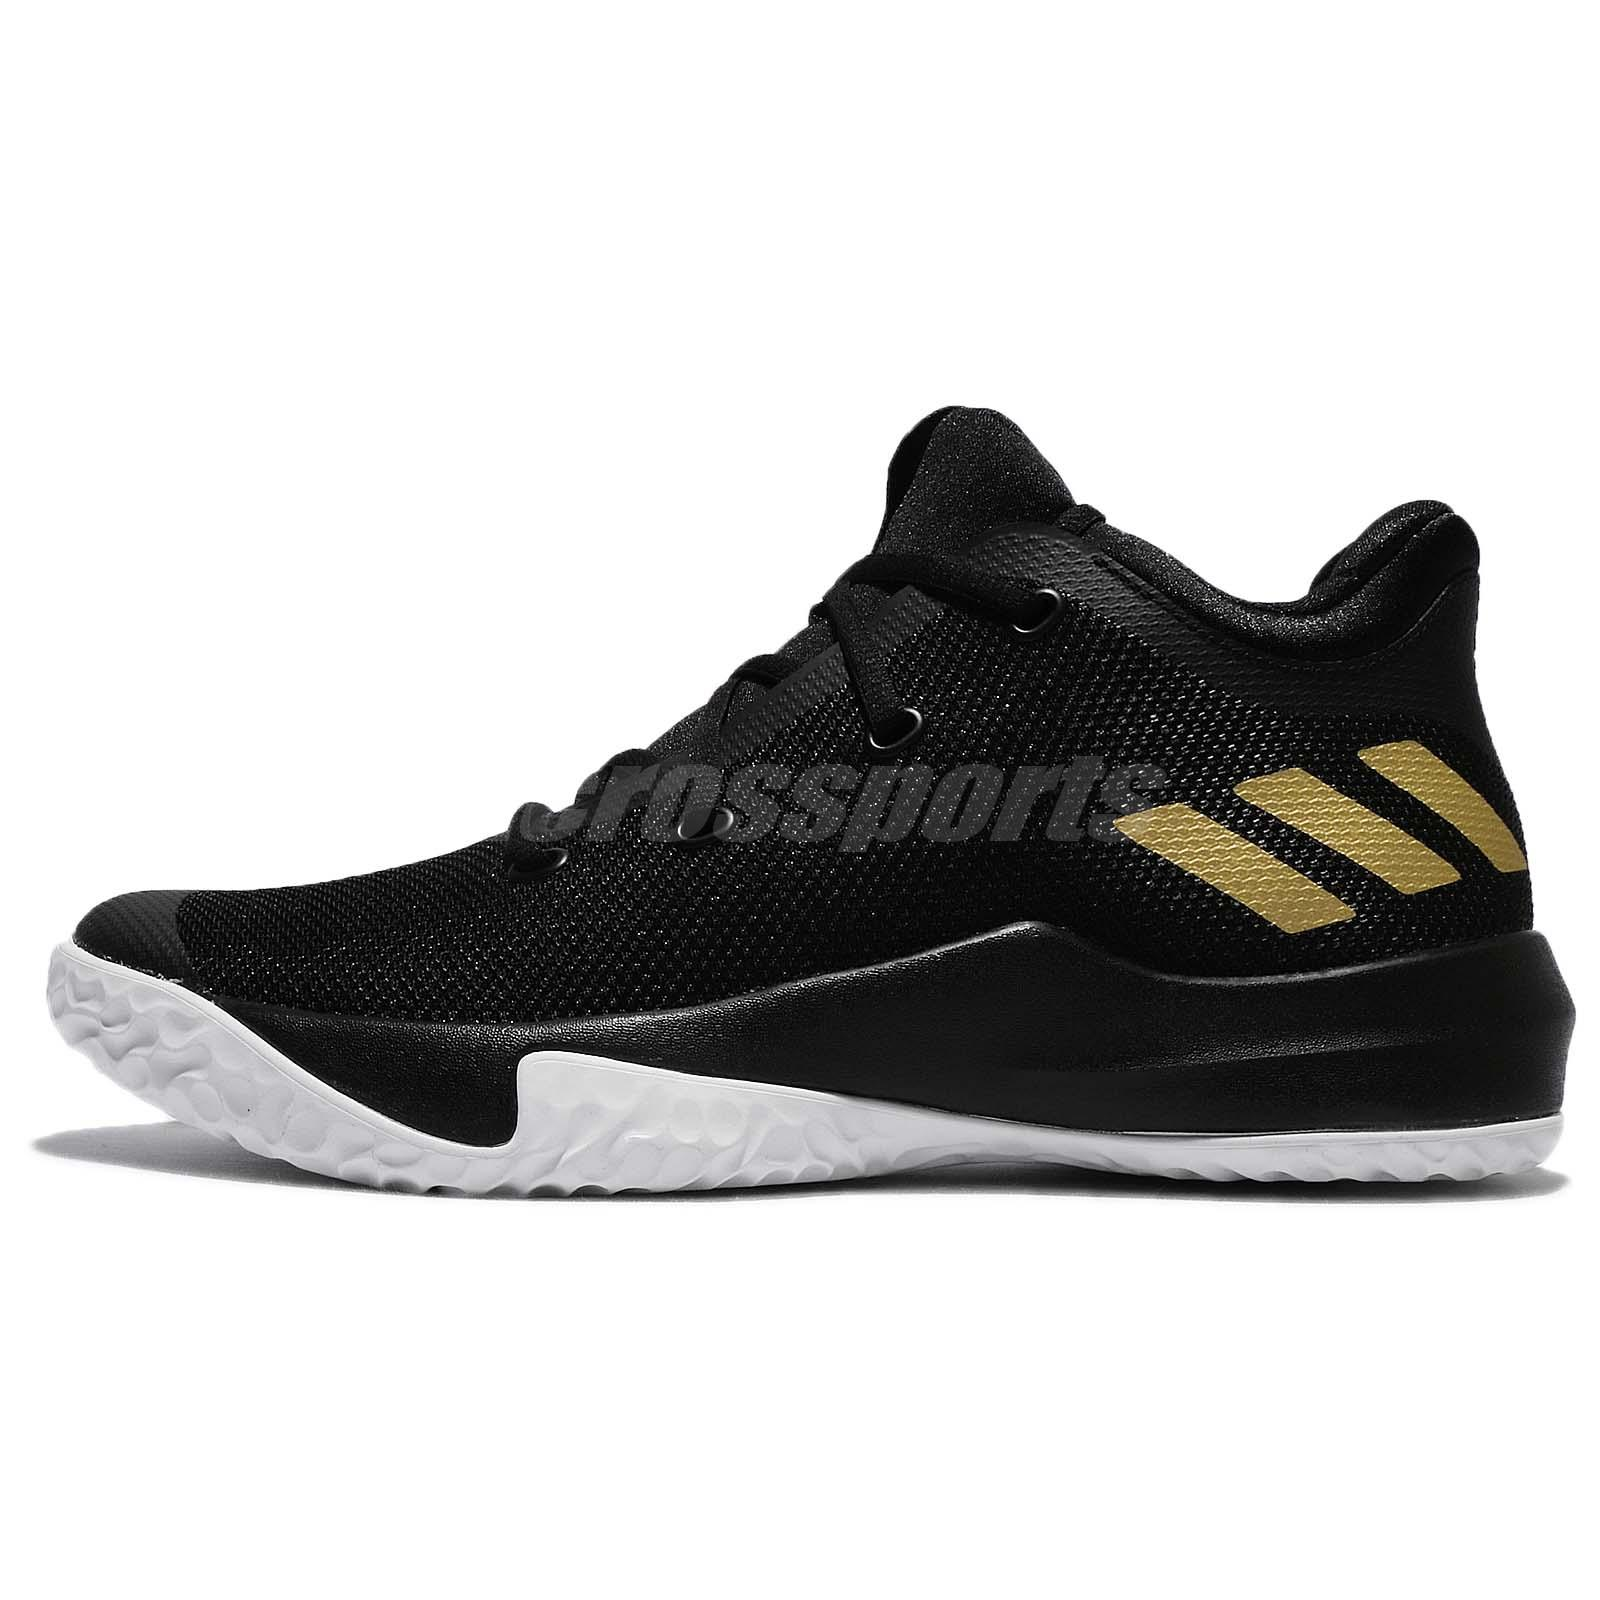 4a610c767176 adidas D Rose Menace 3 III Derrick Black Gold White Men Basketball Shoes  CQ0523